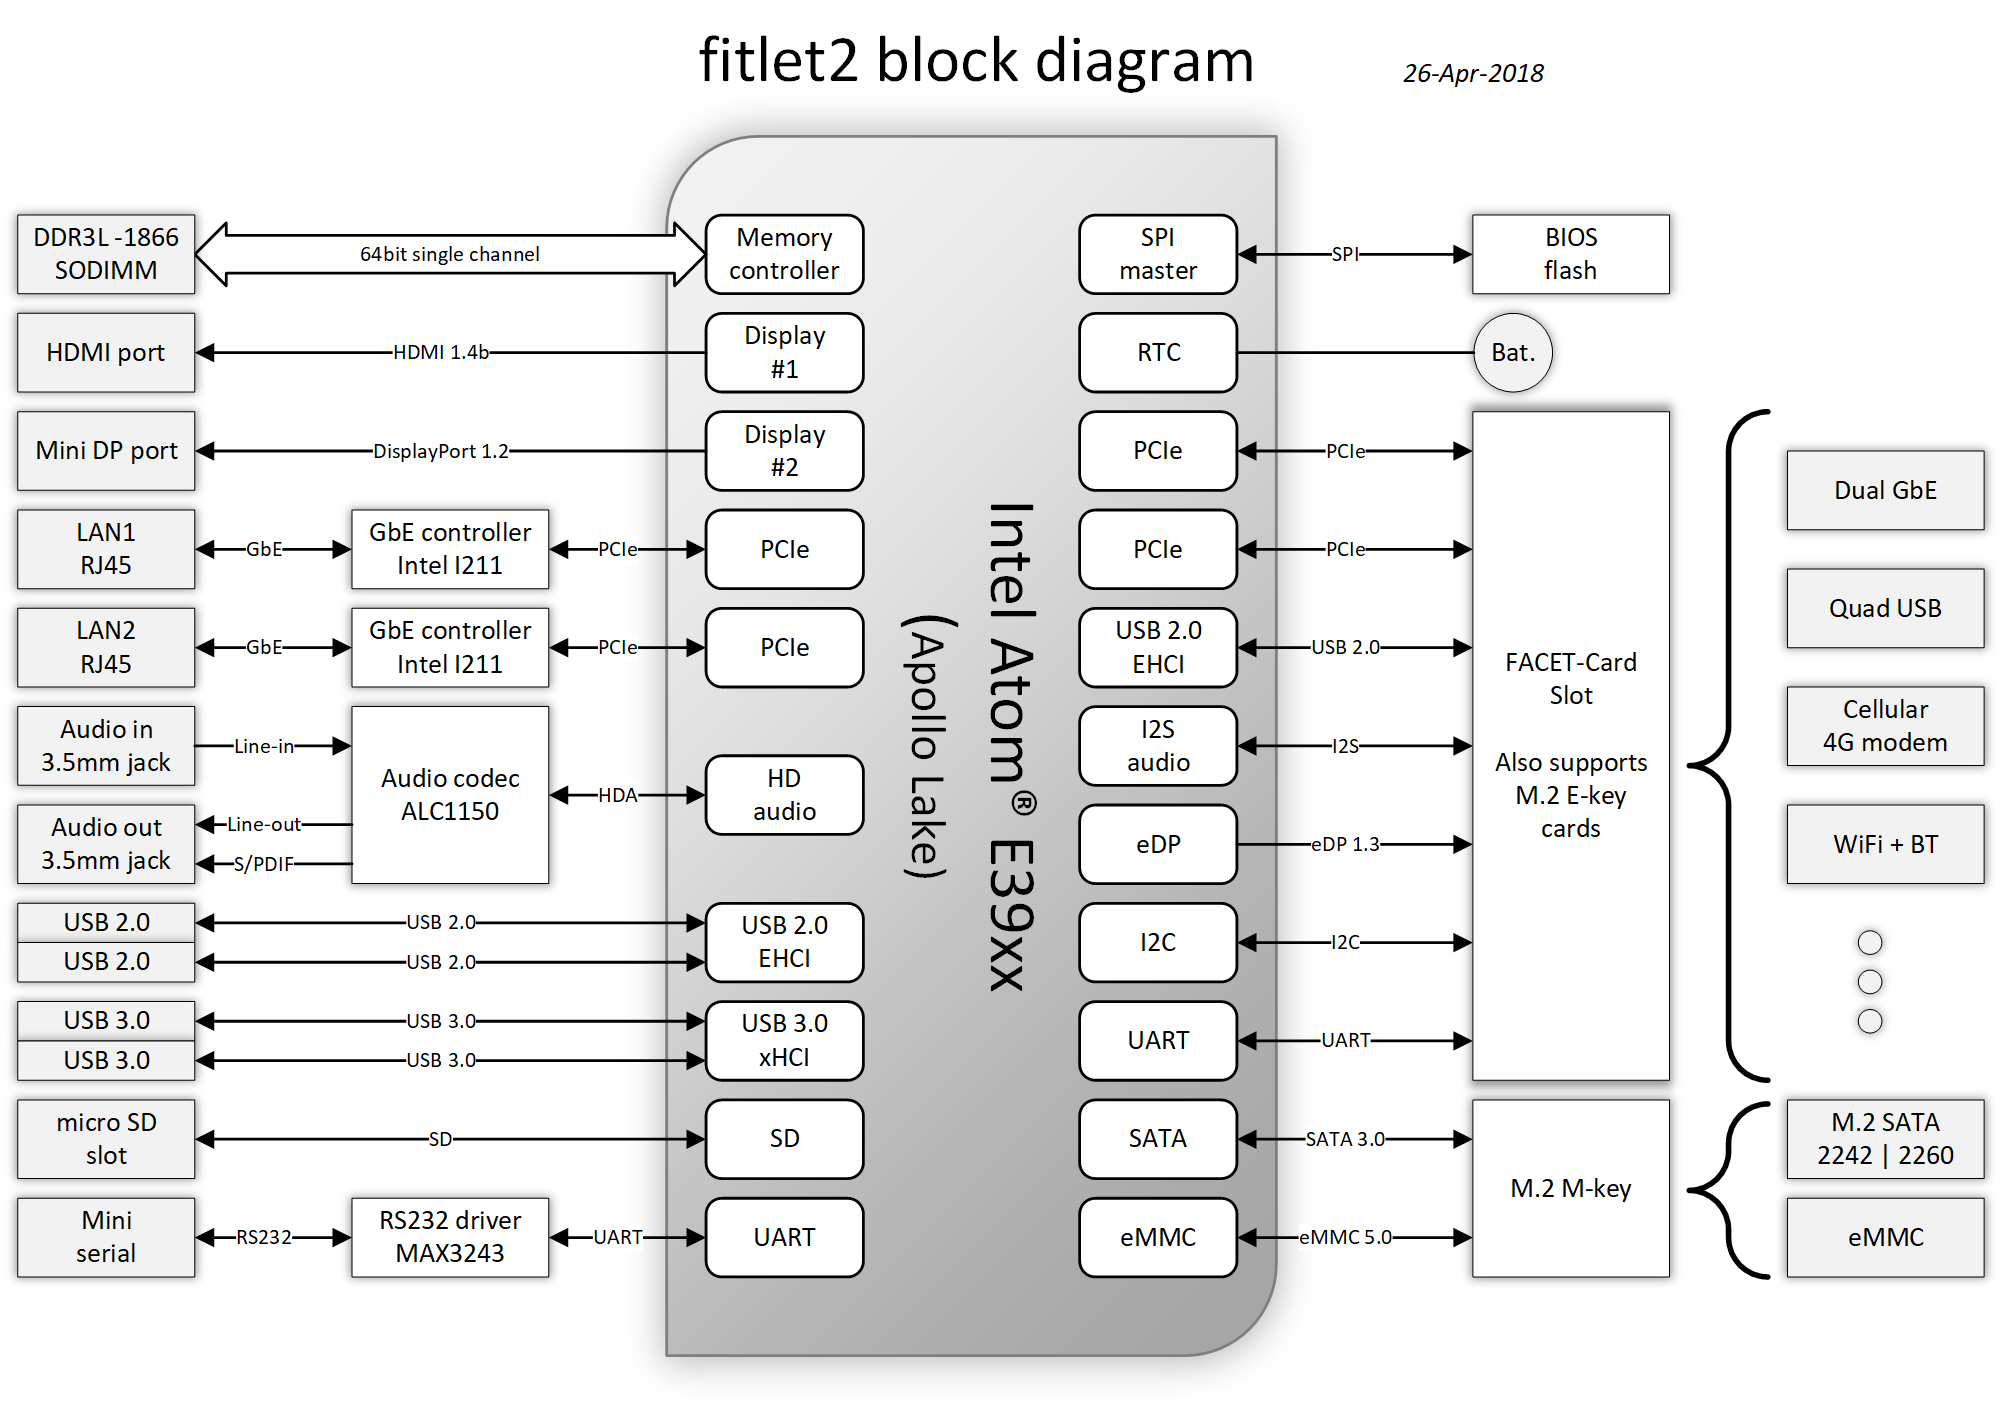 fitlet2-block-diagram